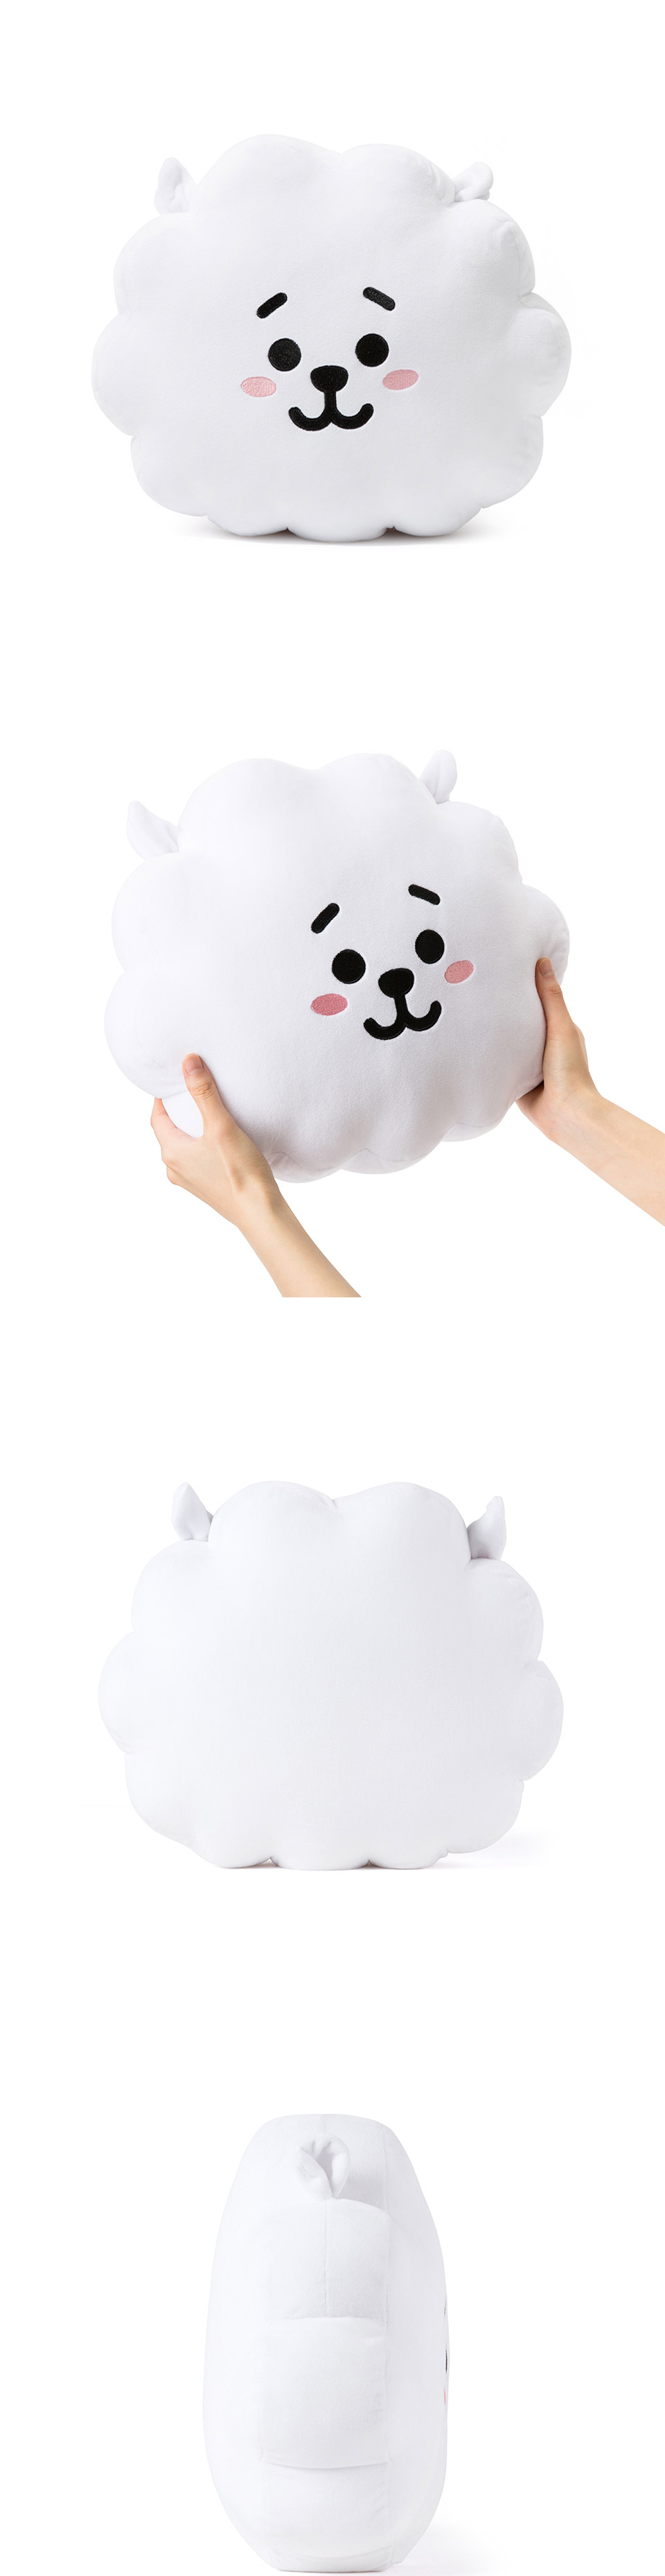 bt21_cushion_30cm_01.jpg